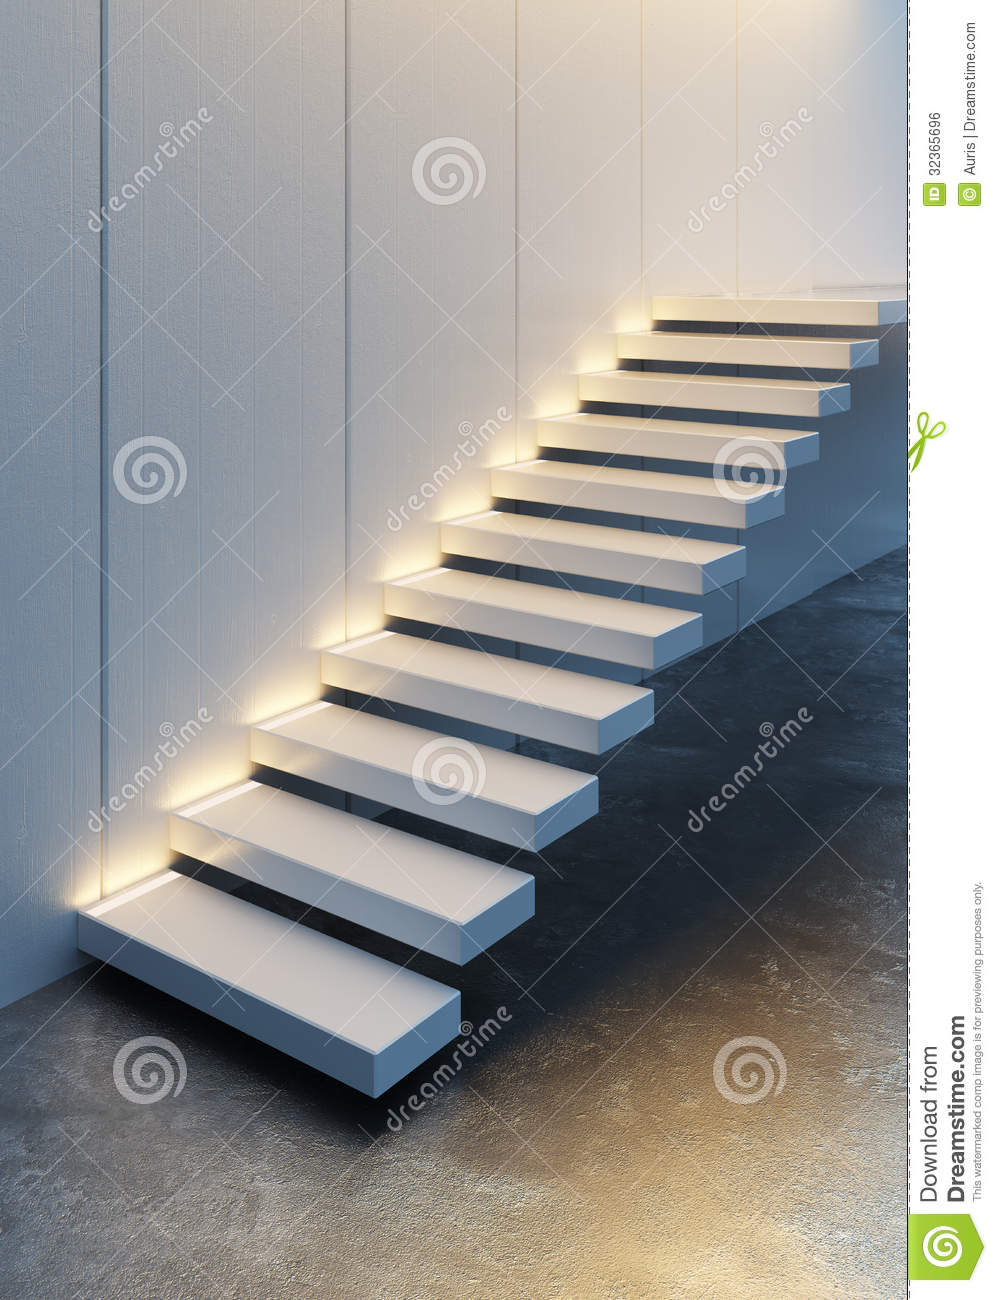 Lighting Basement Washroom Stairs: Illuminated Stairs Stock Illustration. Image Of Stairway